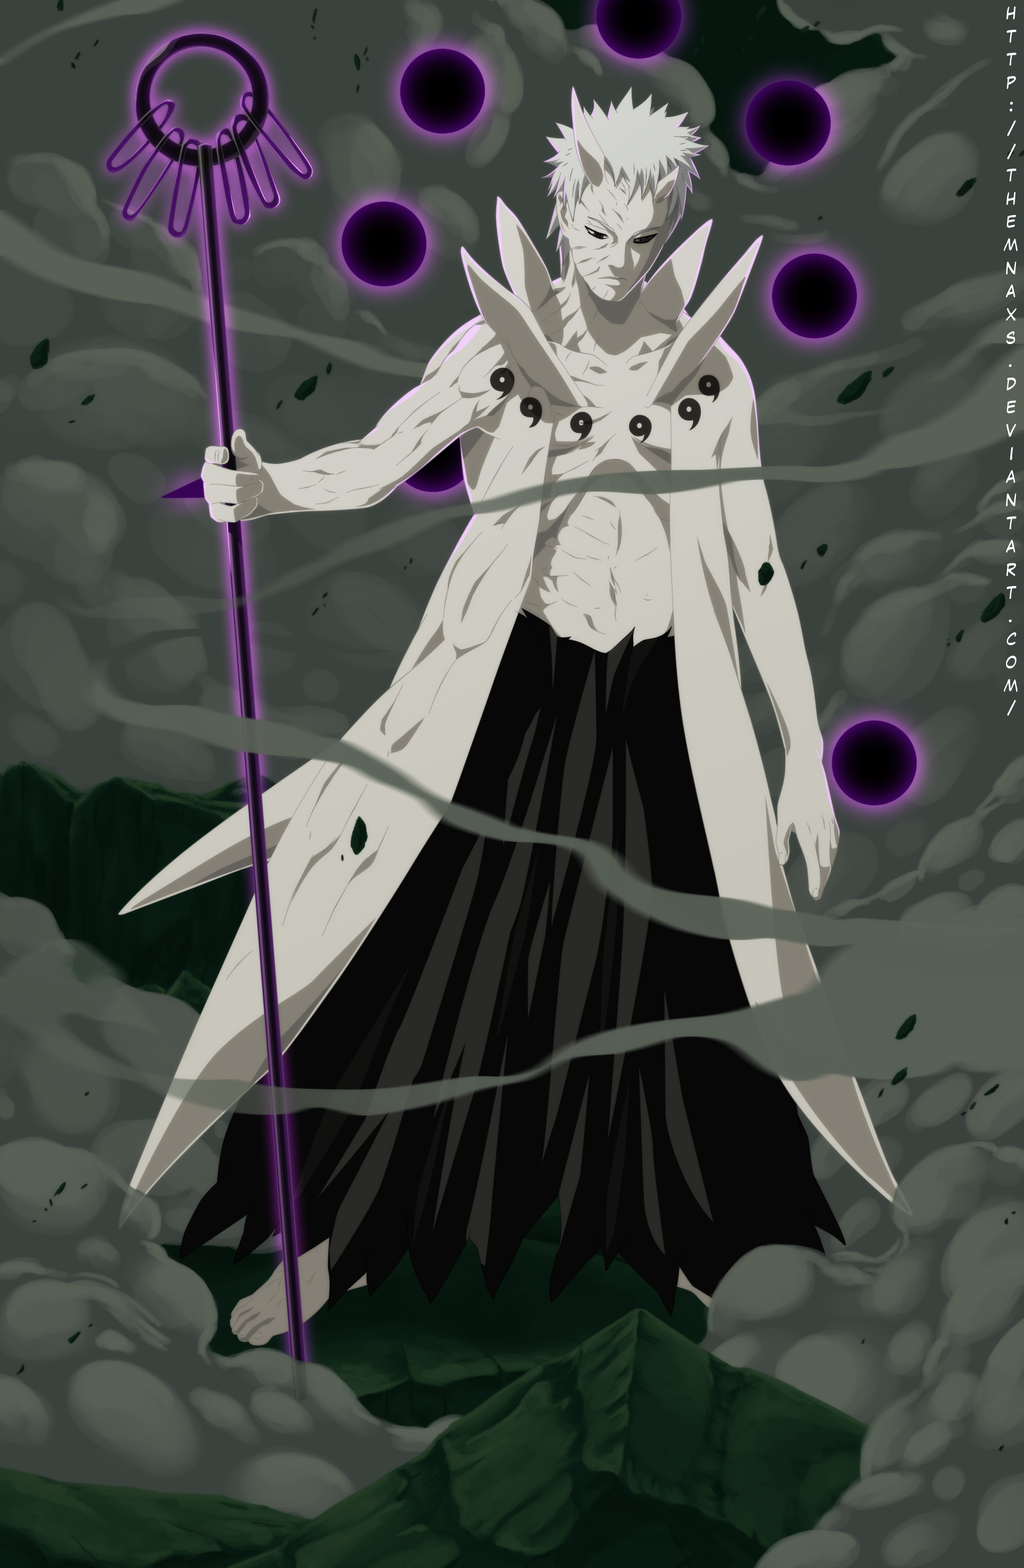 Obito Uchiha 10 Tails Sage Form ( Better In Preview ) Minecraft Skin